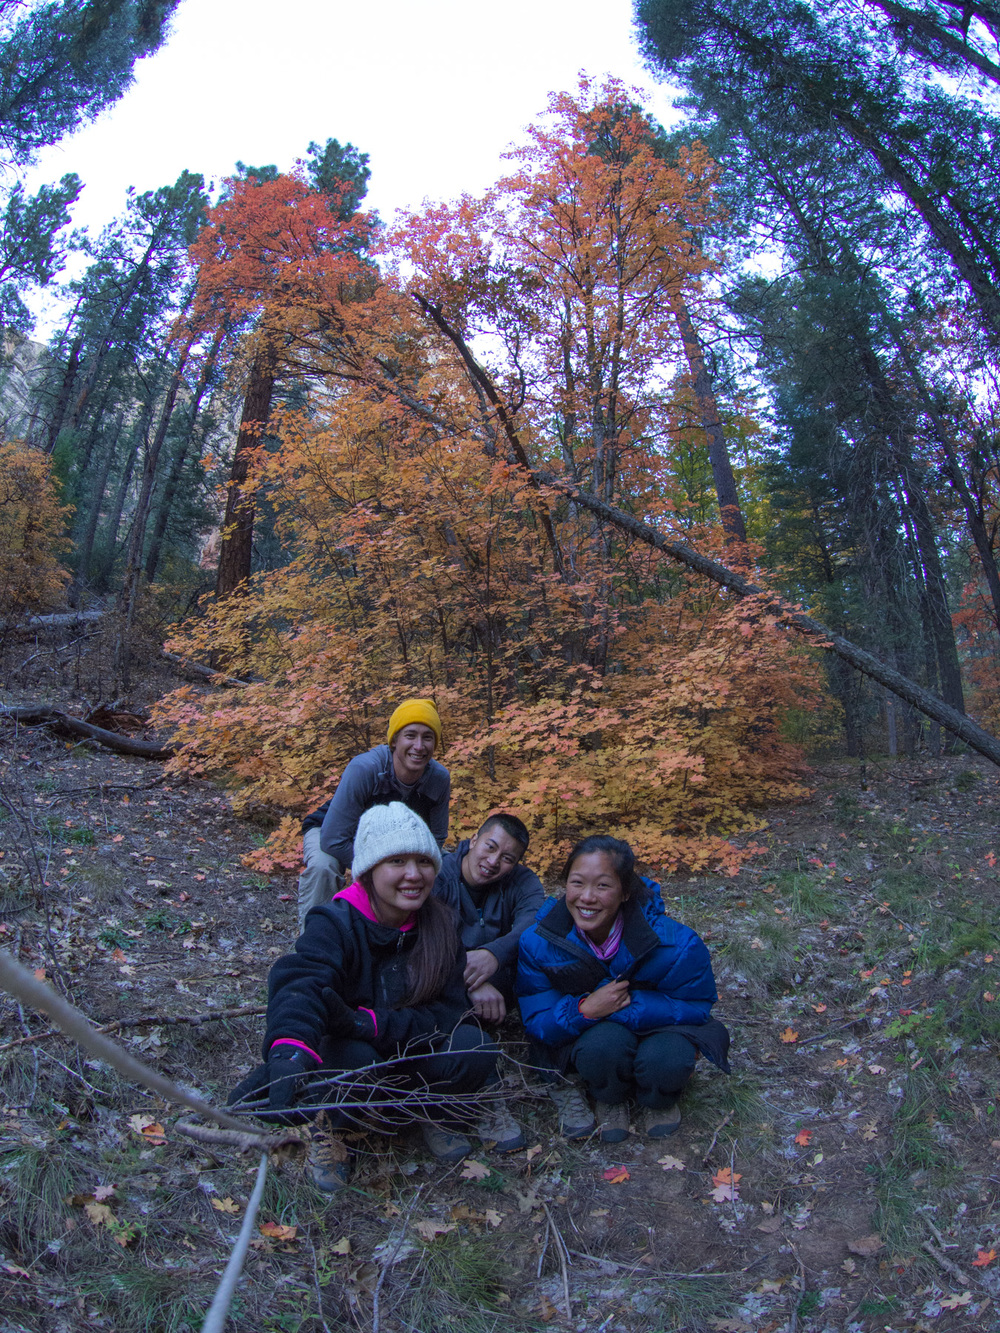 We stopped by a particularly colorful tree to snap a group photo